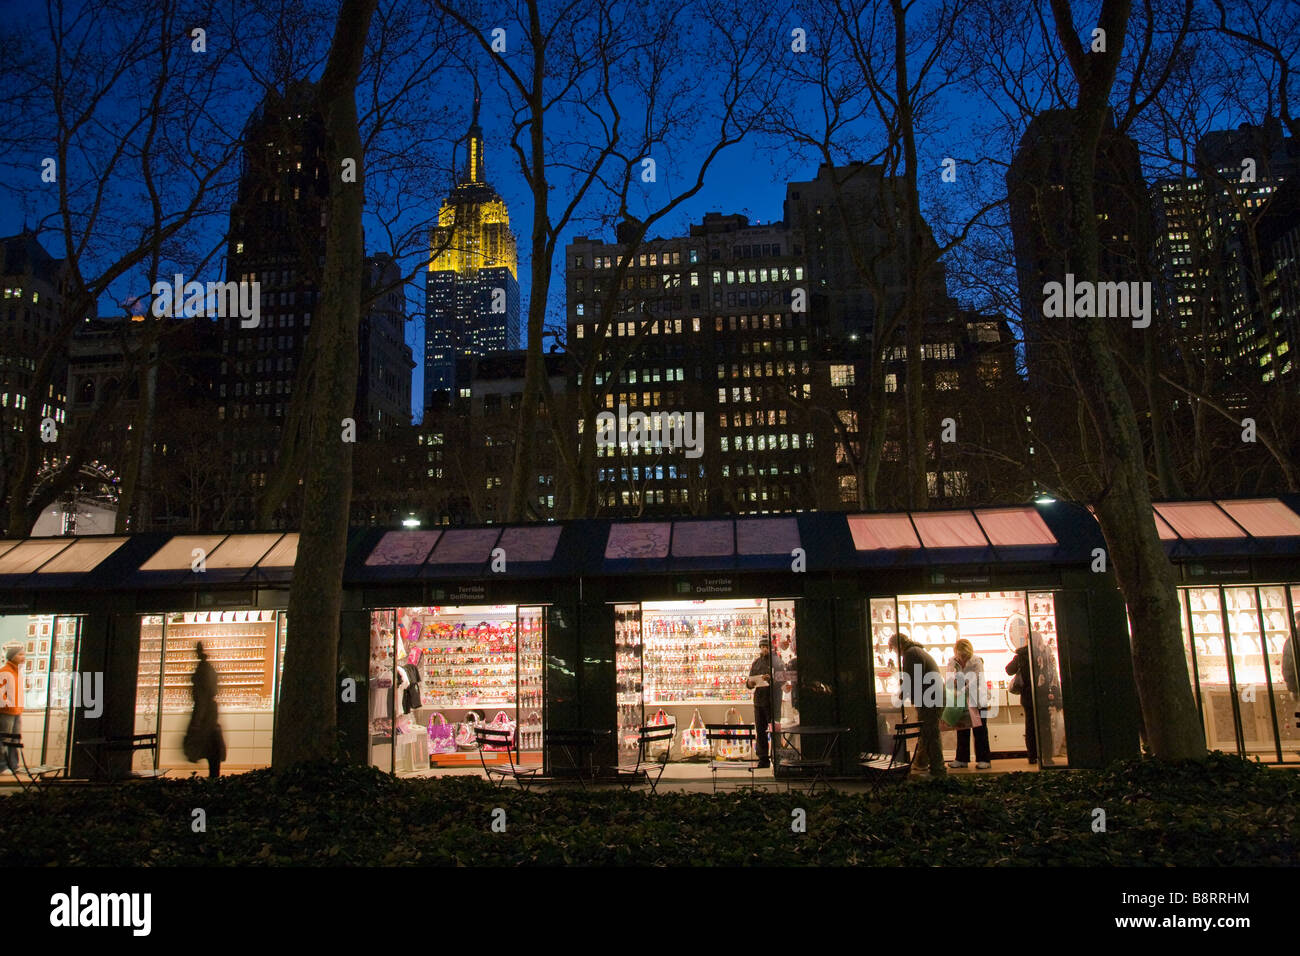 Holiday Christmas Market in Bryant Park, NYC Stock Photo: 22651040 ...